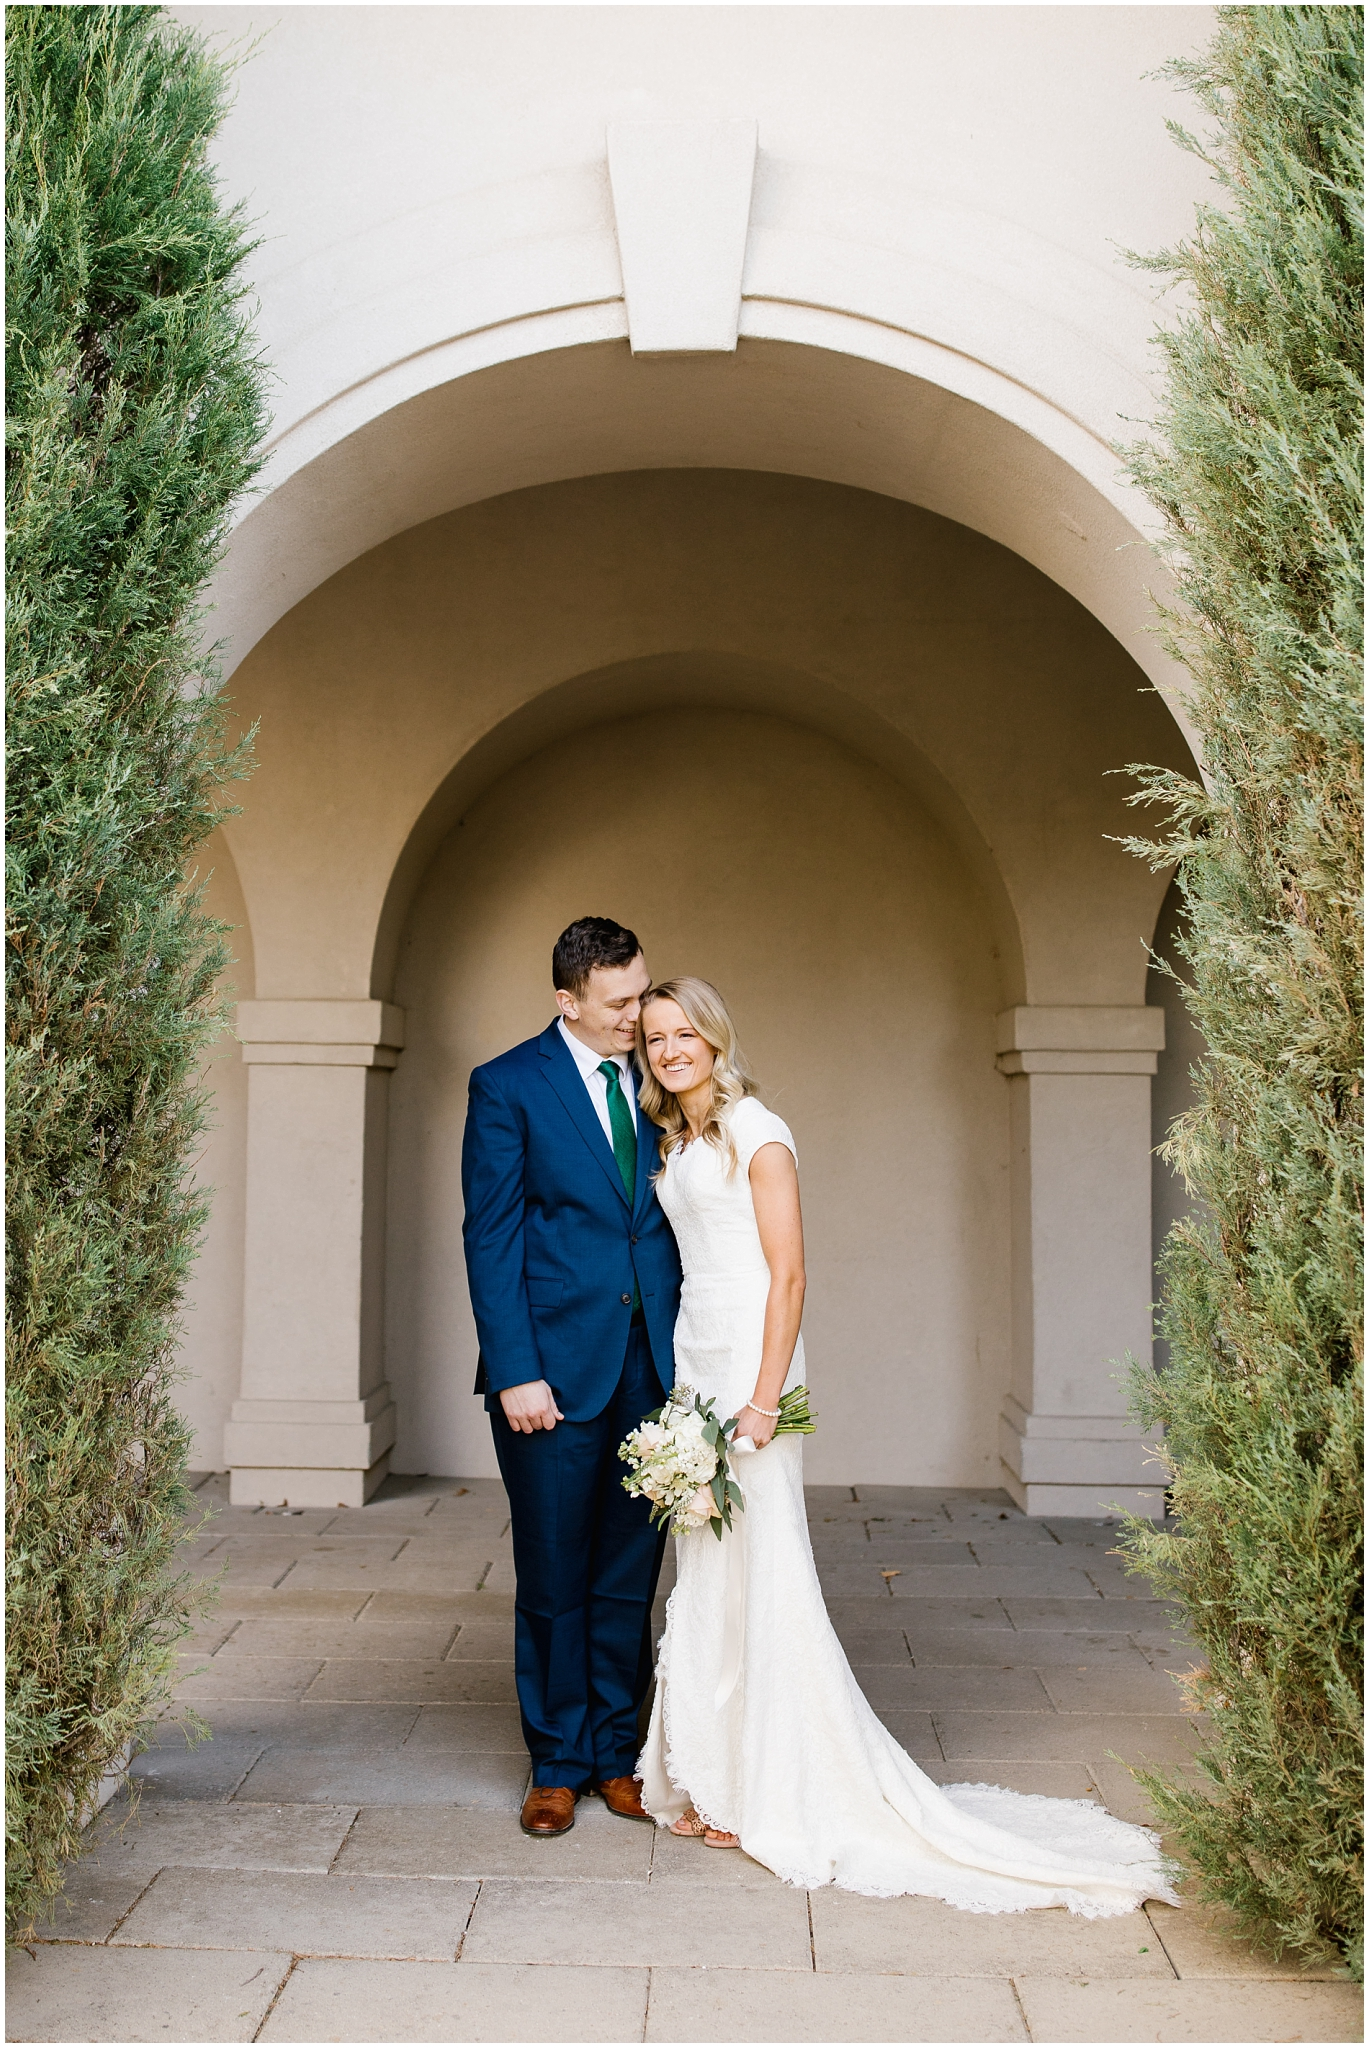 TA-Bridals-18_Lizzie-B-Imagery-Utah-Wedding-Photographer-Park-City-Salt-Lake-City-Thanksgiving-Point-Ashton-Gardens-Lehi-Utah.jpg